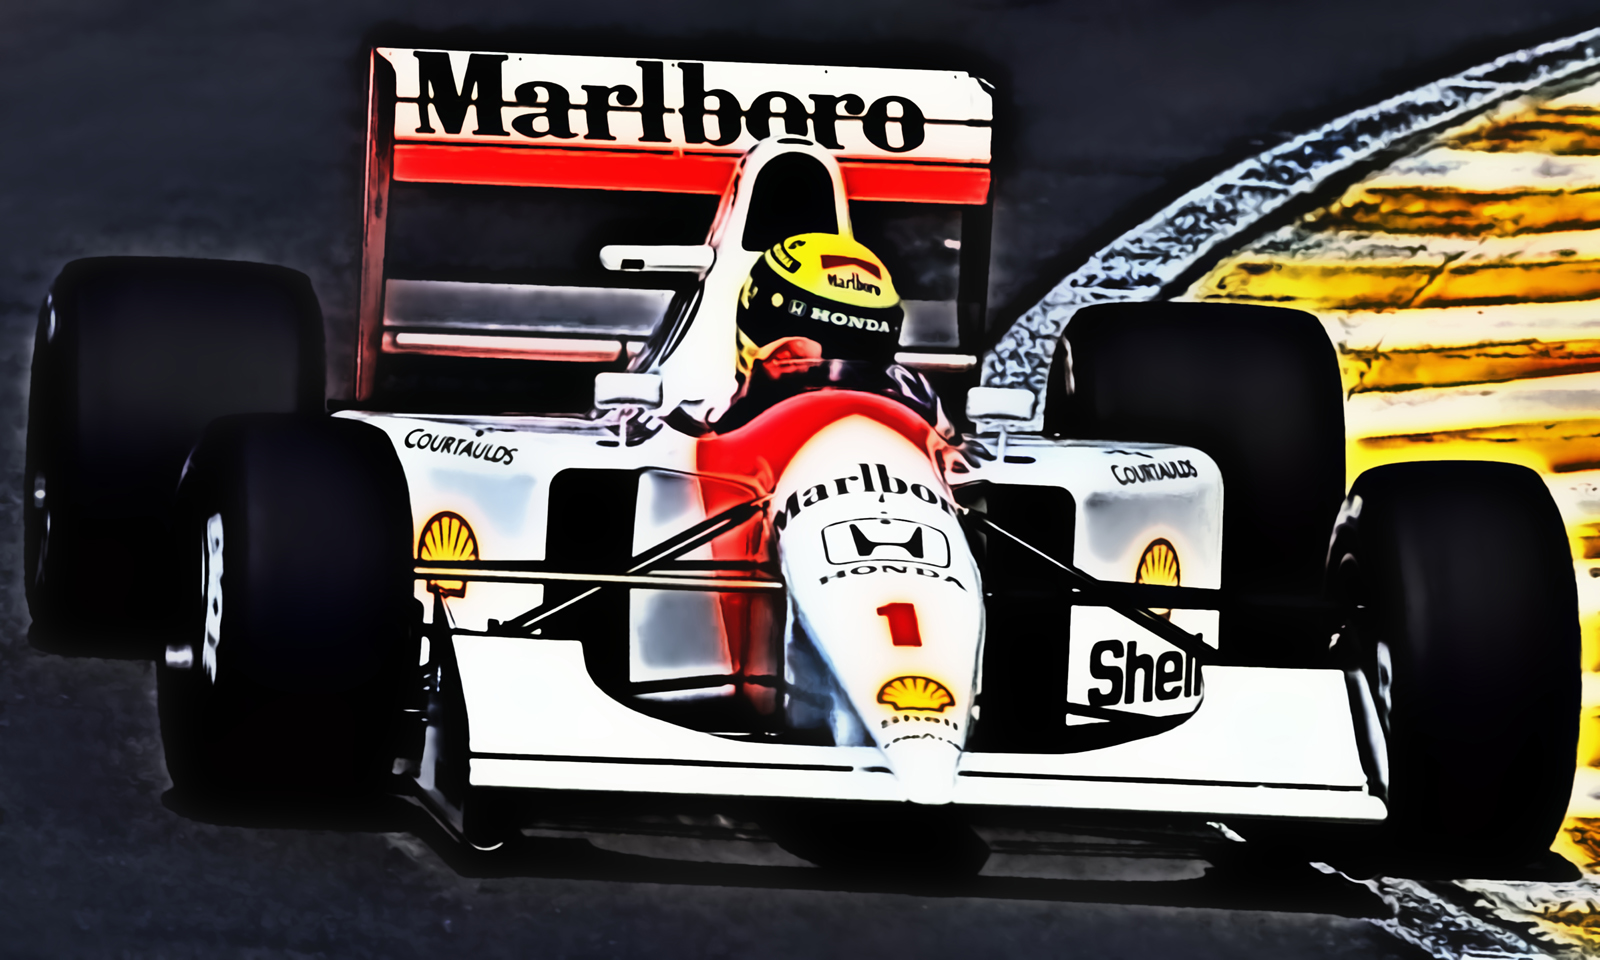 poster xxl pop art ayrton senna formel 1 mc laren ferrari lotus 150x90 ebay. Black Bedroom Furniture Sets. Home Design Ideas